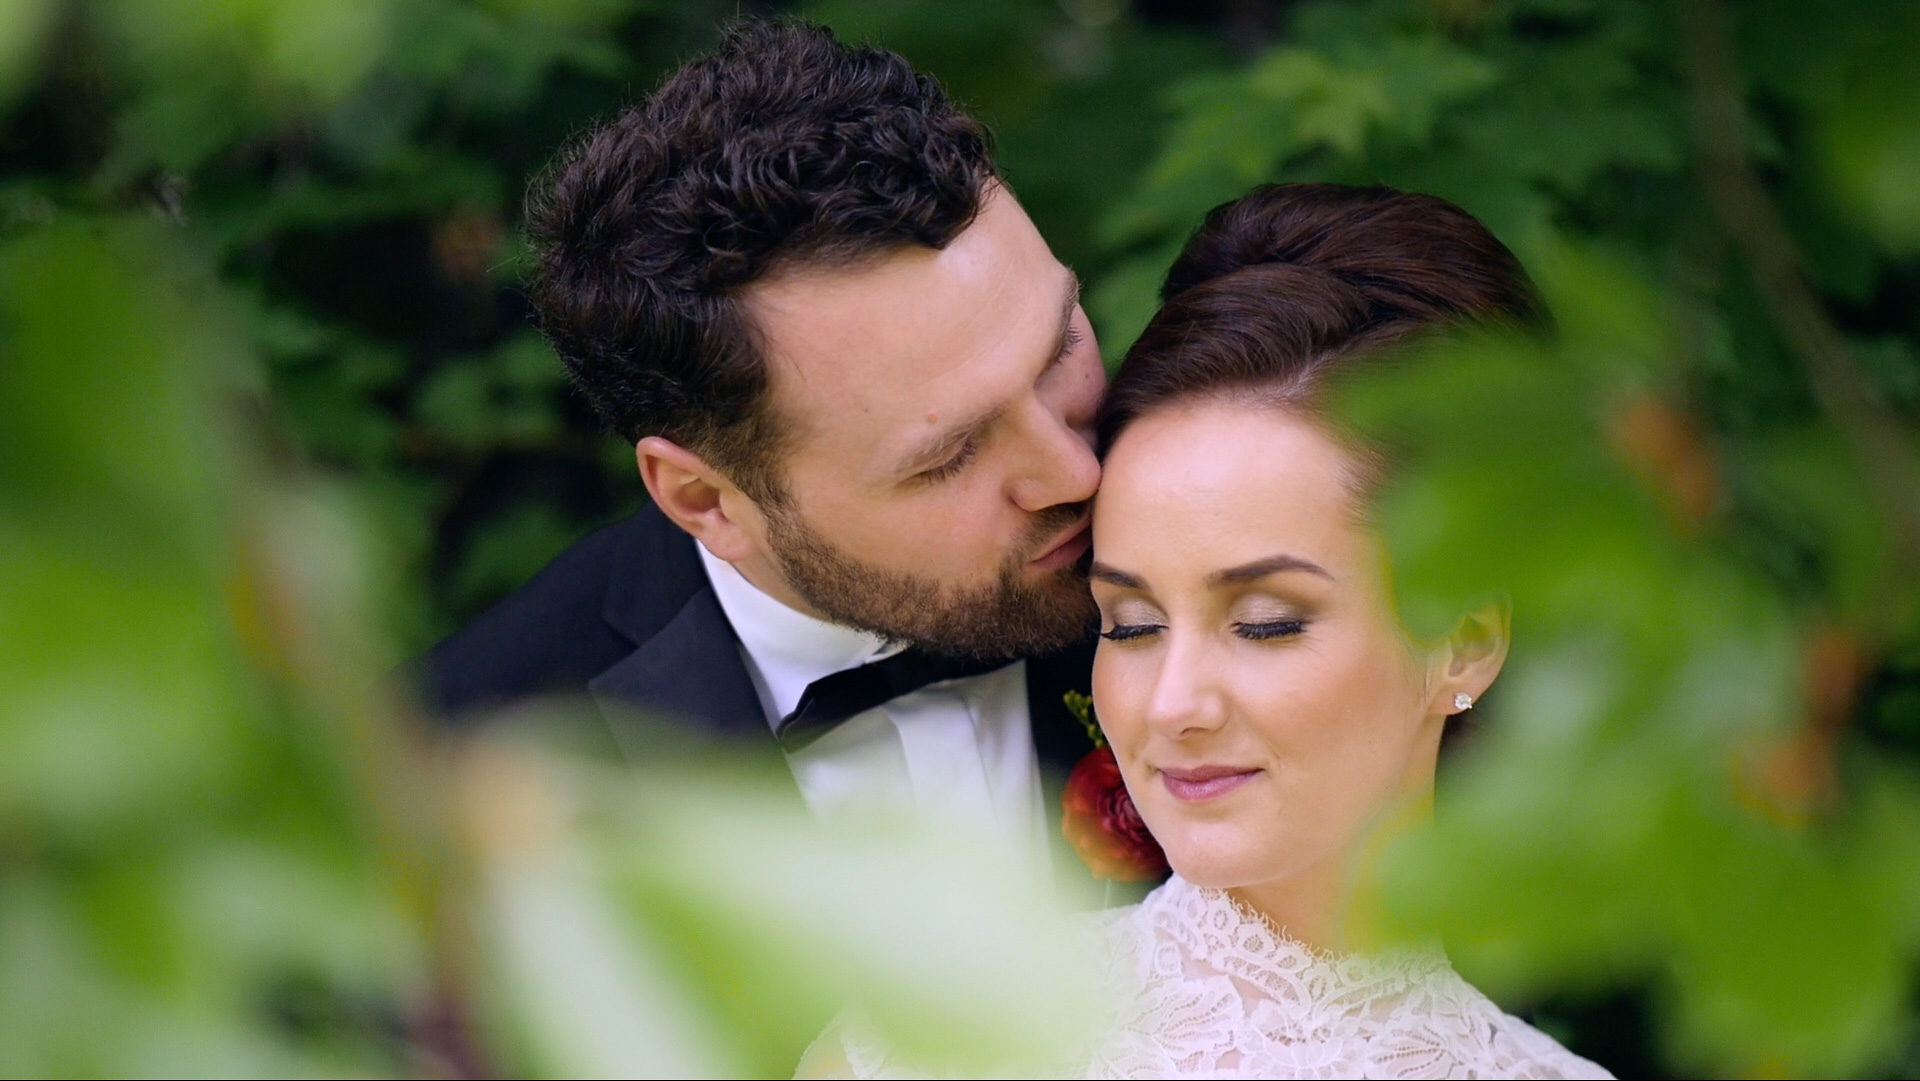 Jennifer and Luke on their wedding day at Ashfield House - picture from their wedding highlight video.